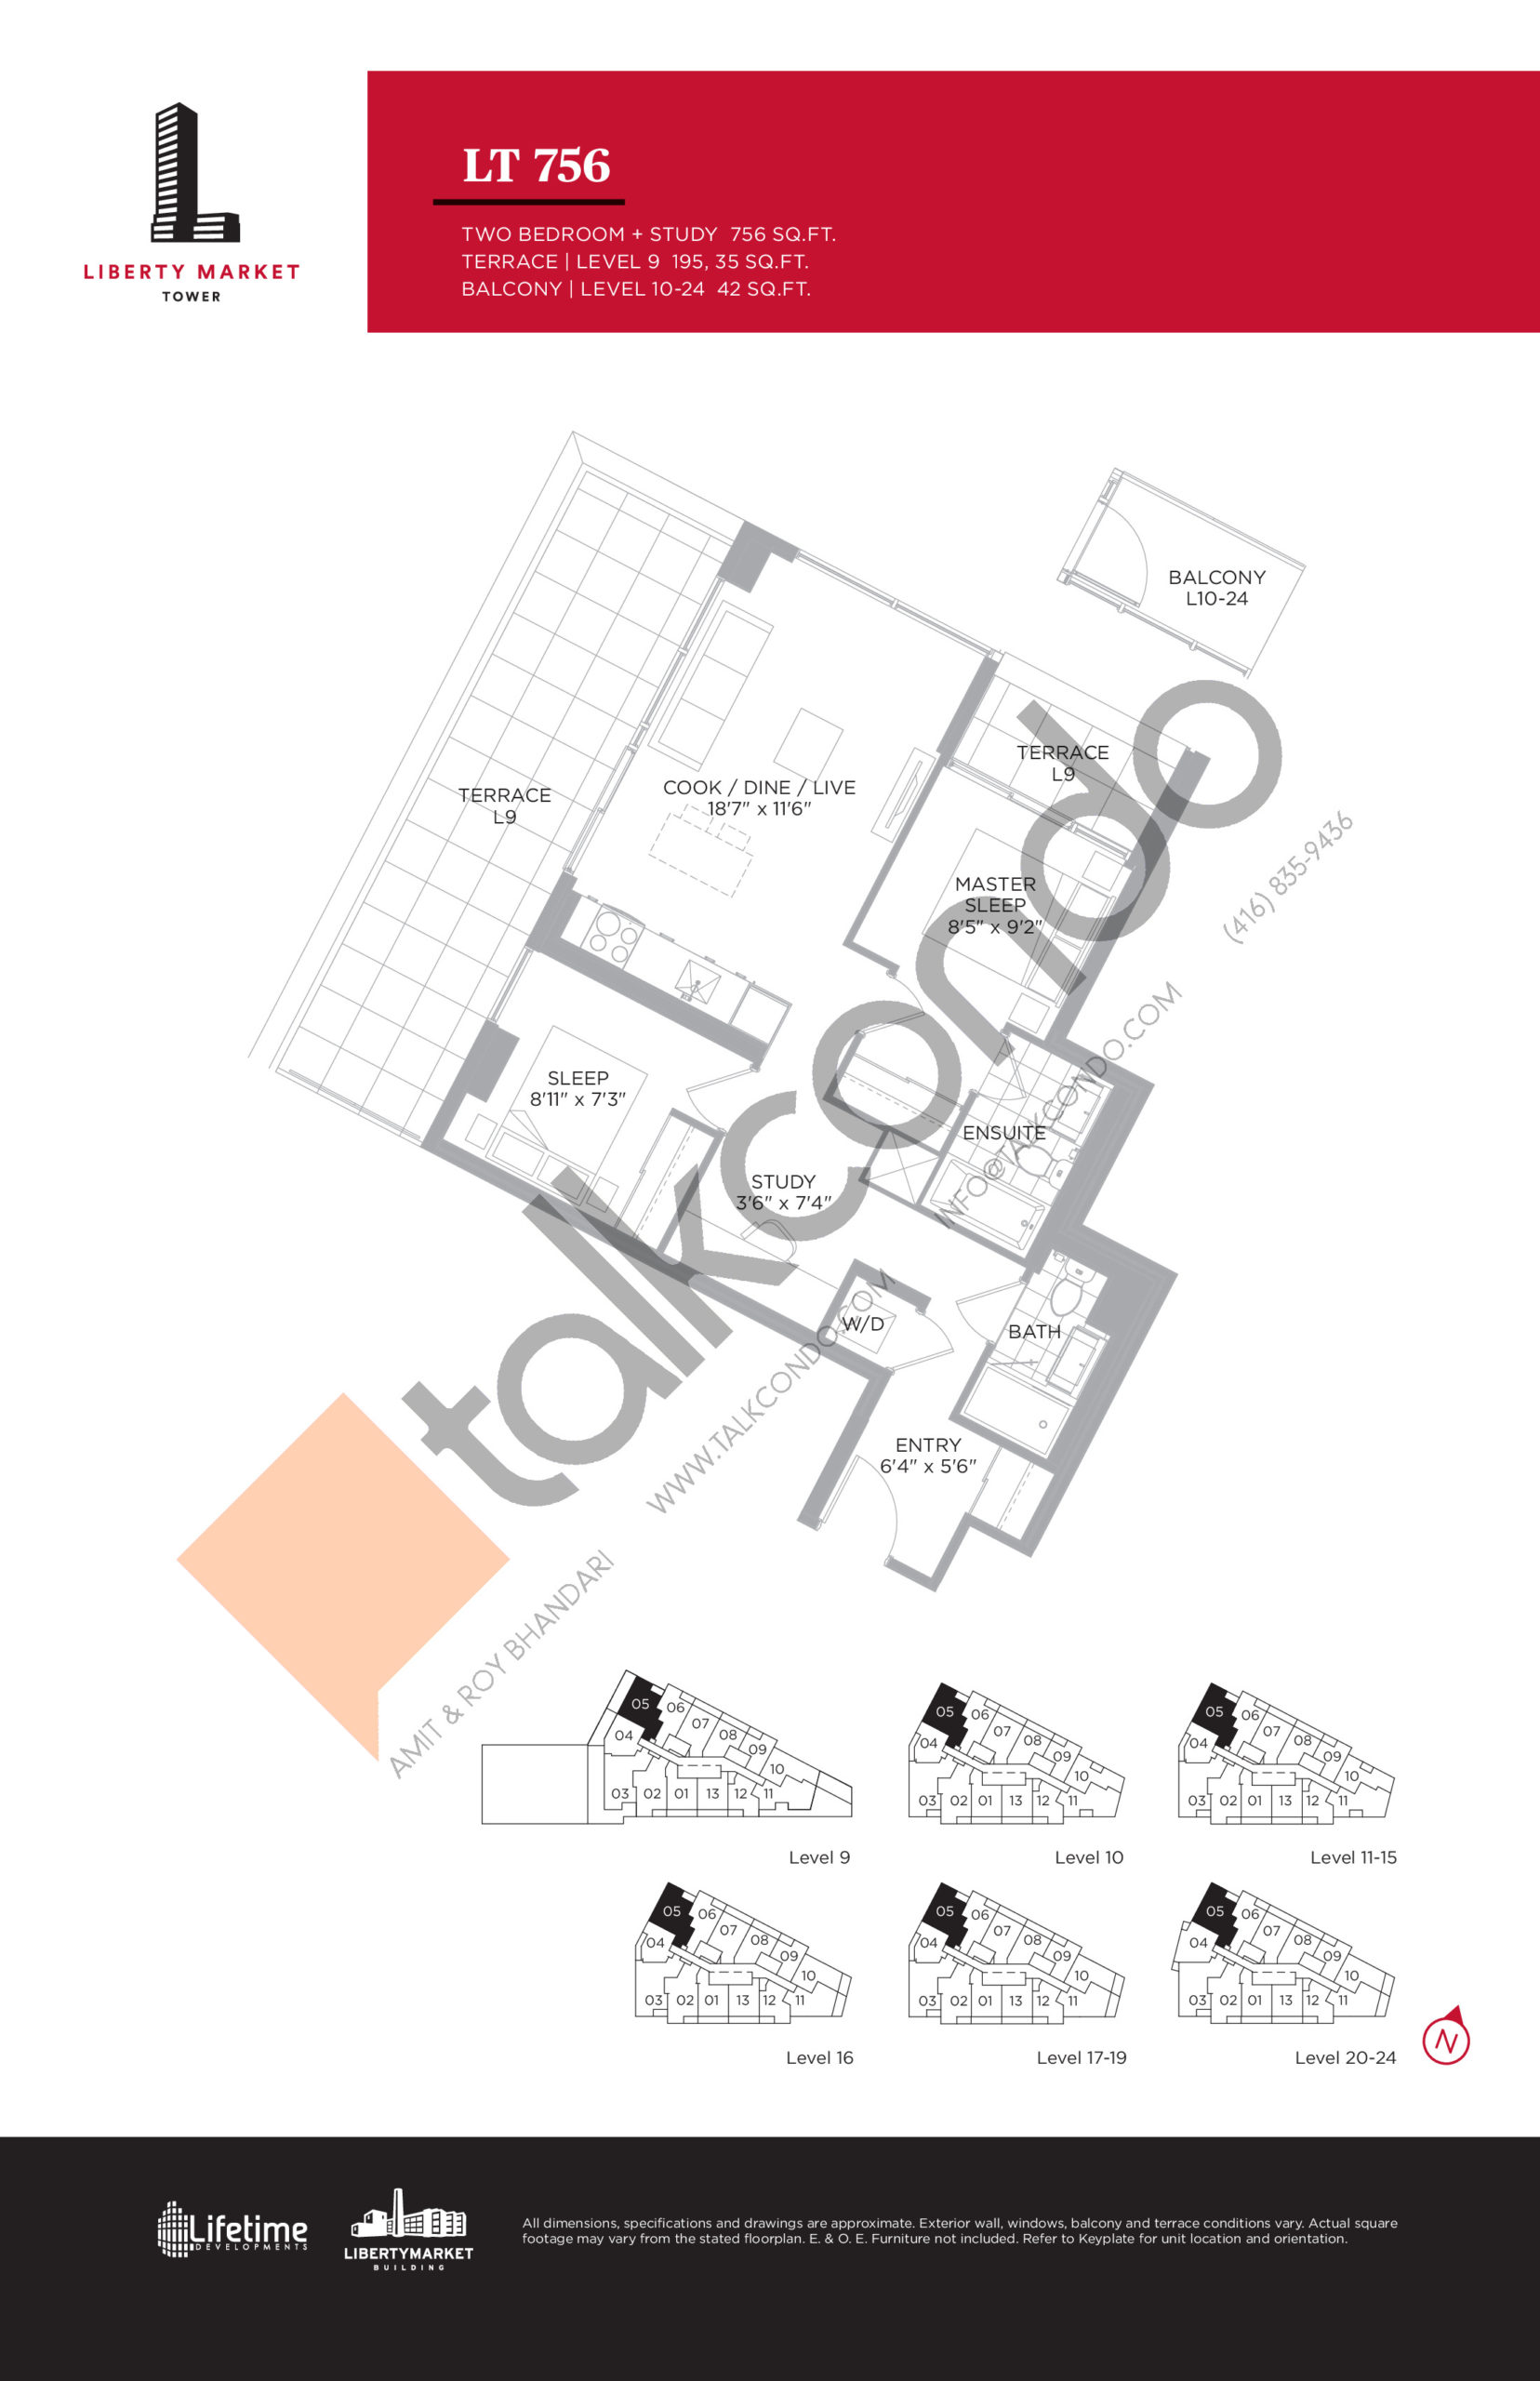 LT 756 - Tower Collection Floor Plan at Liberty Market Tower Condos - 756 sq.ft